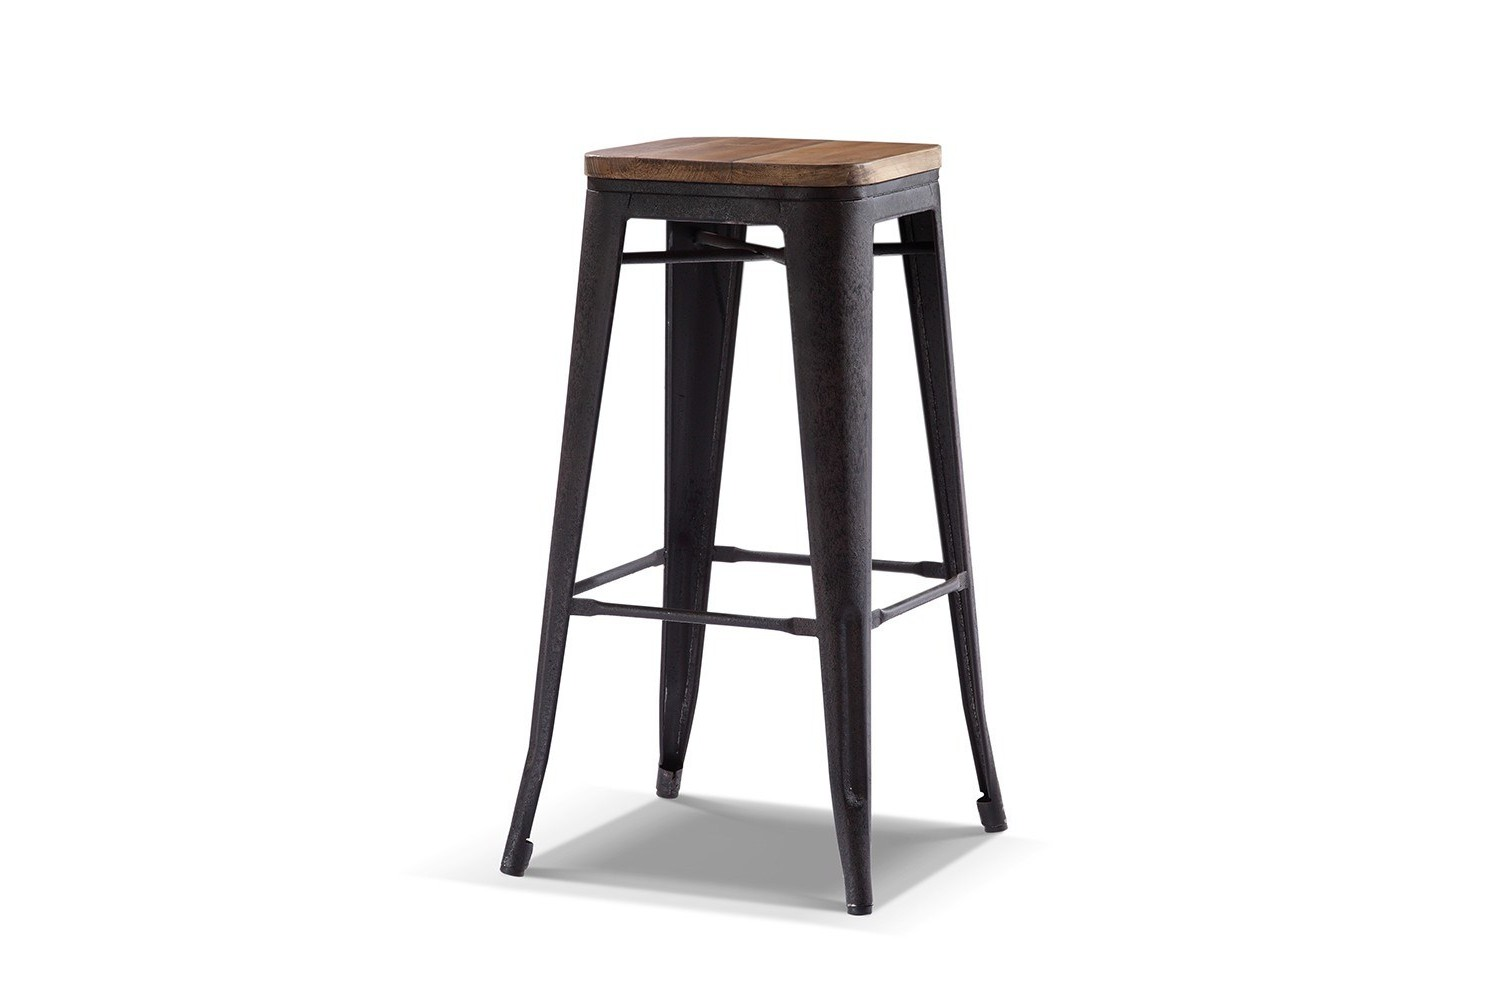 tabouret de bar avec dossier ikea cuisine id es de. Black Bedroom Furniture Sets. Home Design Ideas